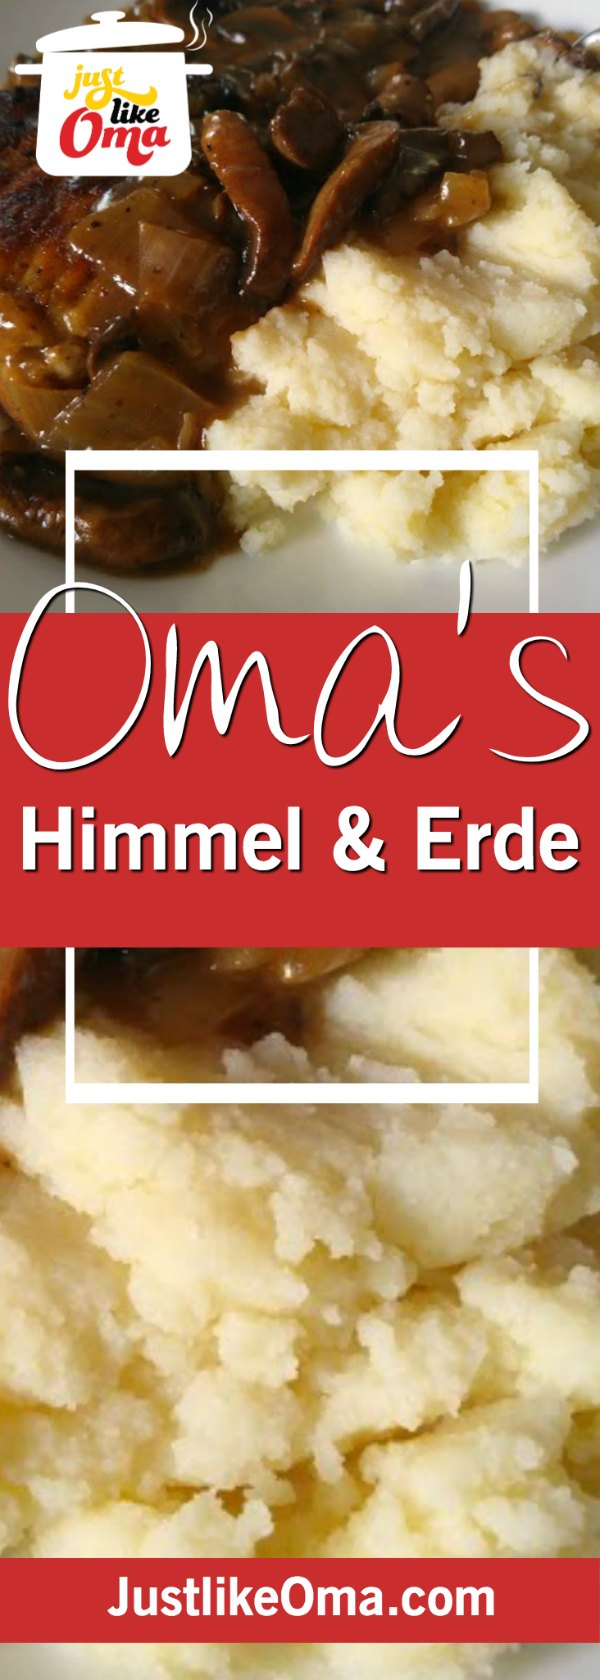 Himmel und Erde, aka Heaven and Earth, combining apples and potatoes. DELICIOUS and SO German! ❤️  https://www.quick-german-recipes.com/himmel-und-erde.html